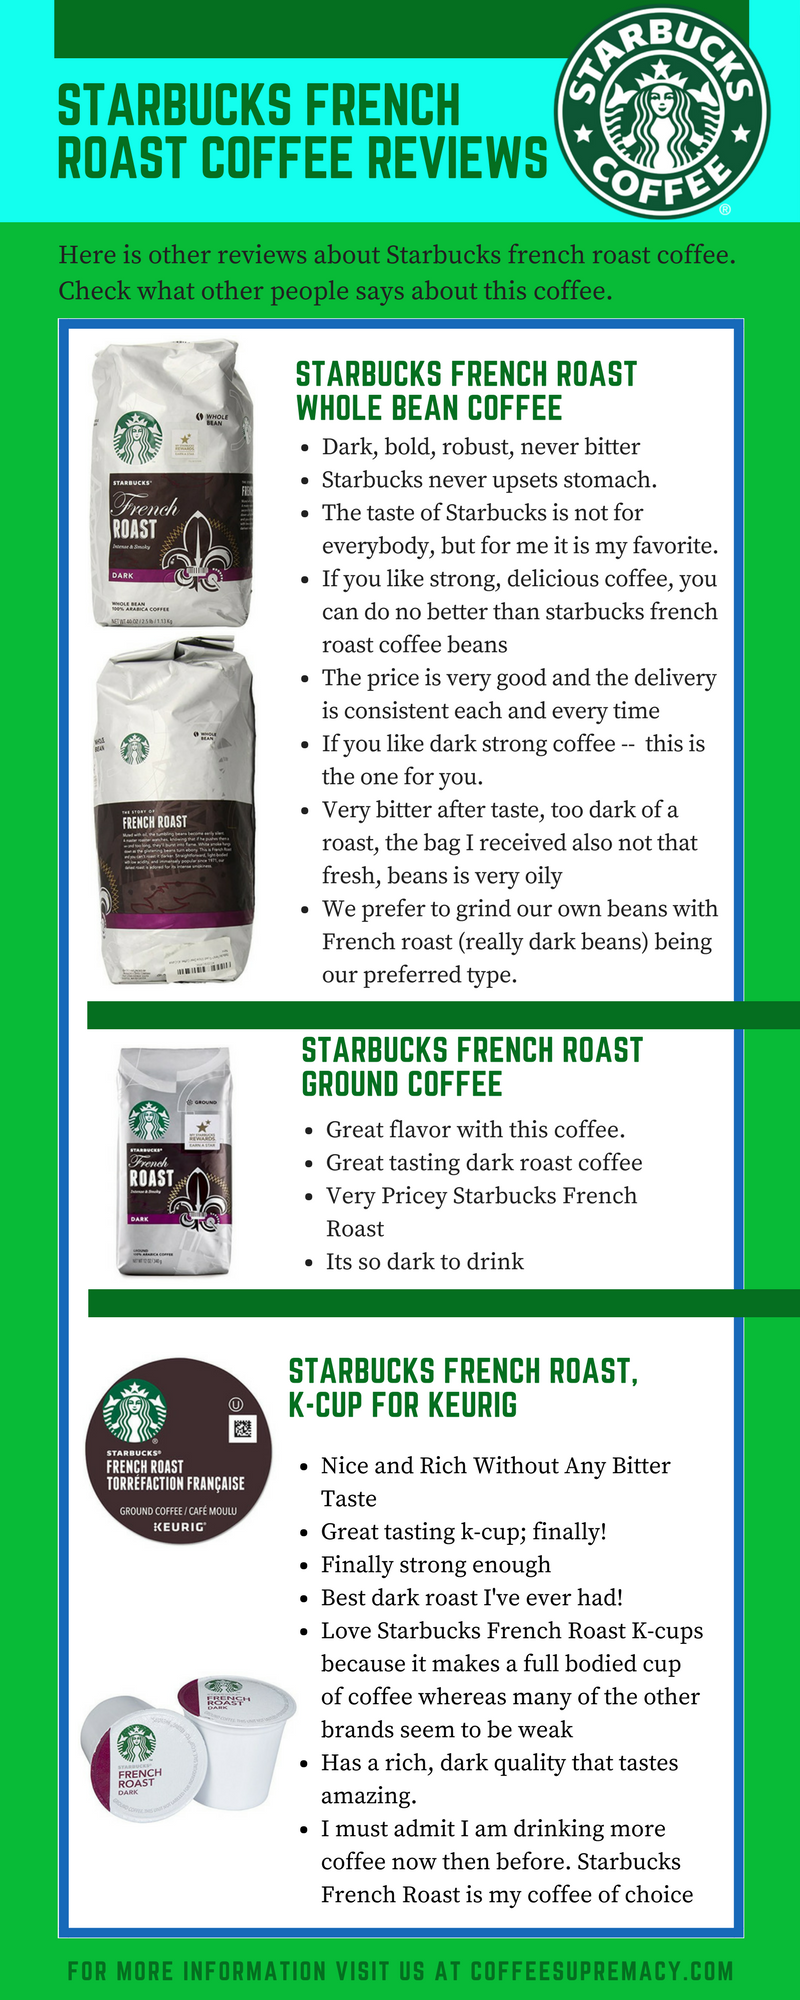 Starbucks french roast coffee reviews